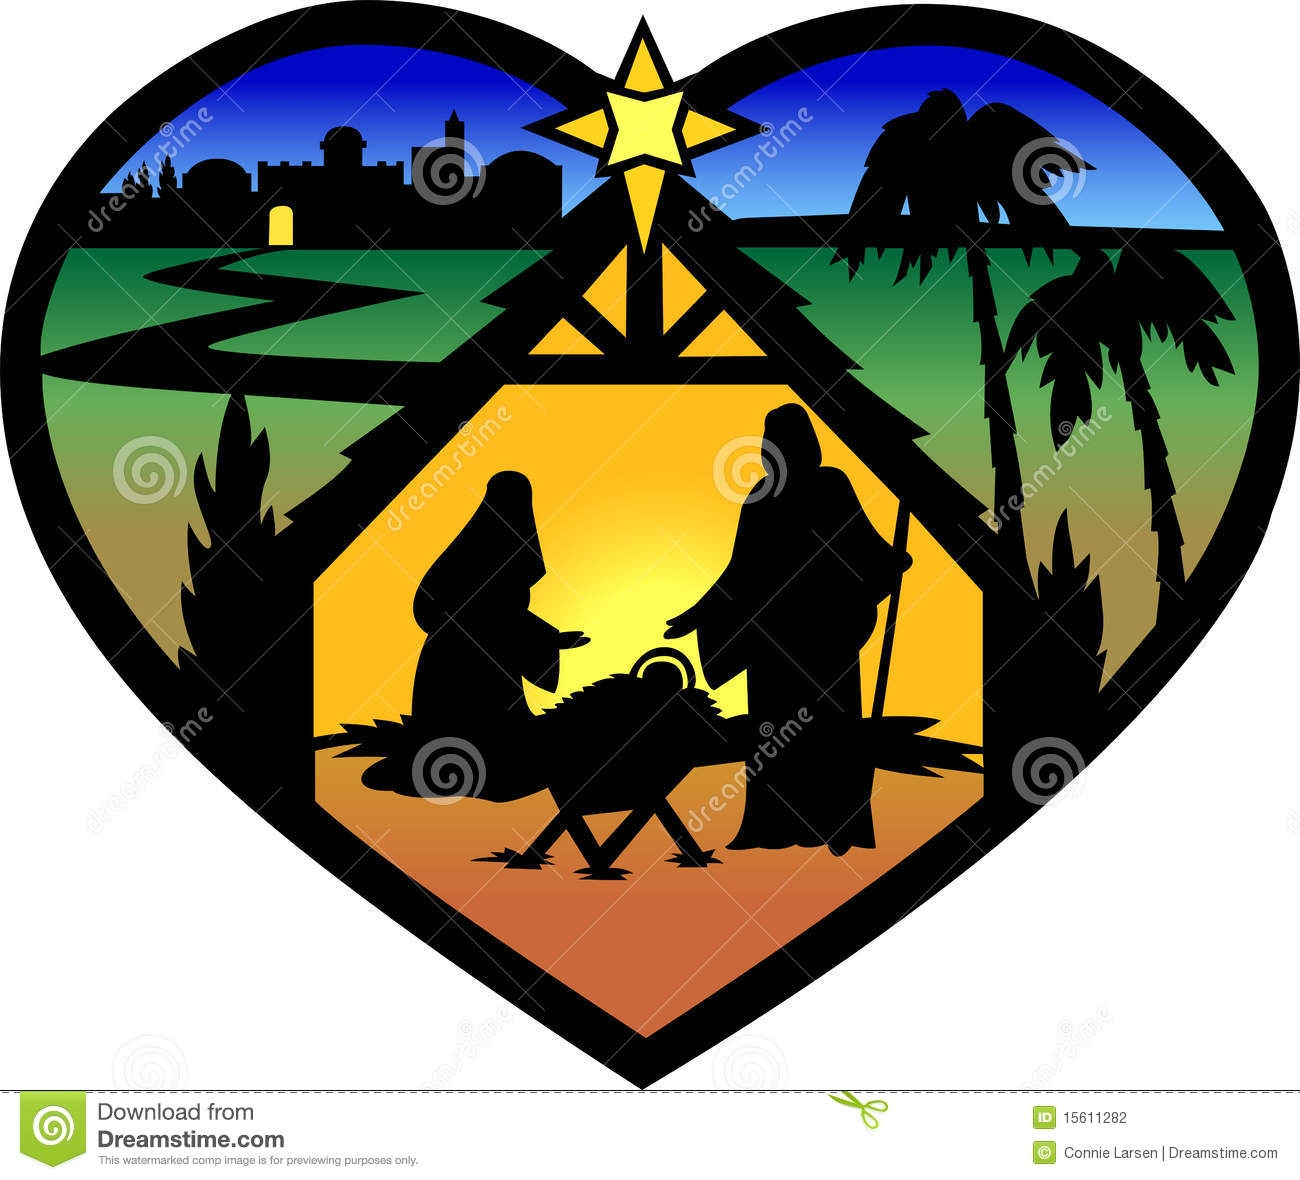 nativity scene coloring pages - stockfotografie geburt christi inner schattenbild image